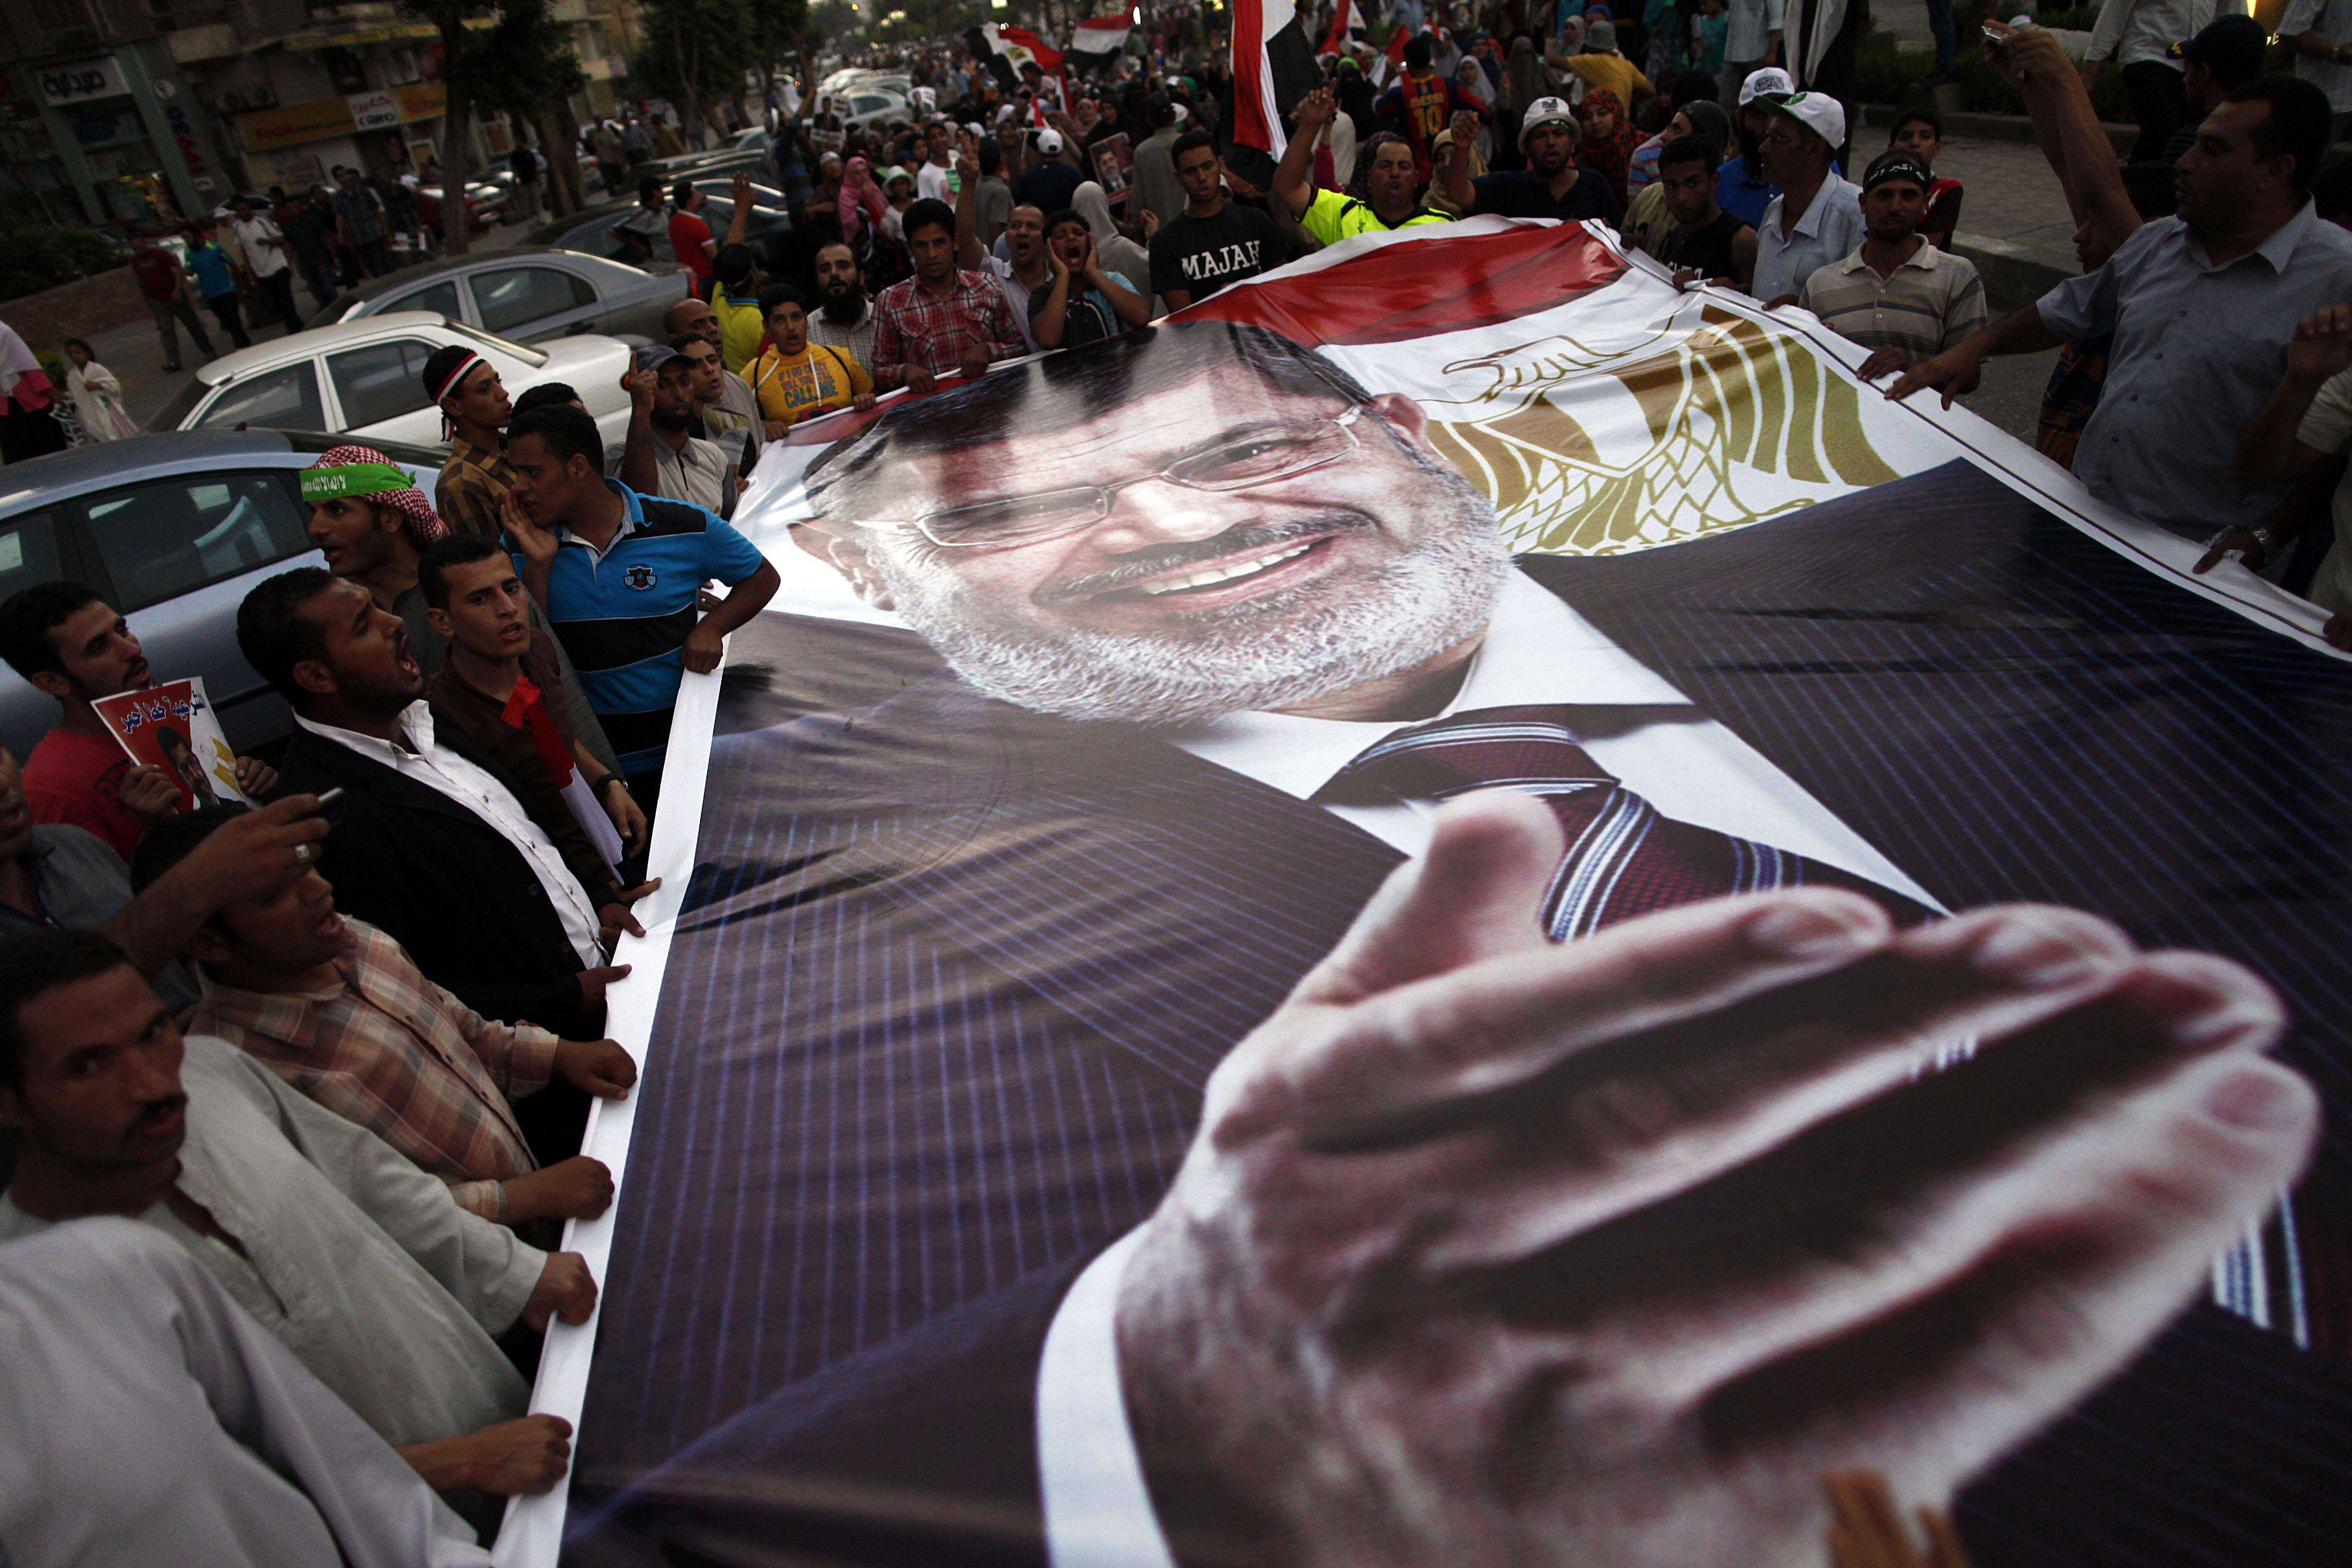 Ousted President Mohamed Morsi supporters and Muslim Brotherhood members hold a giant portrait of him as they demonstrate against his toppling at Raba al-Adwyia mosque on July 7, 2013 in Cairo. (AFP Photo)